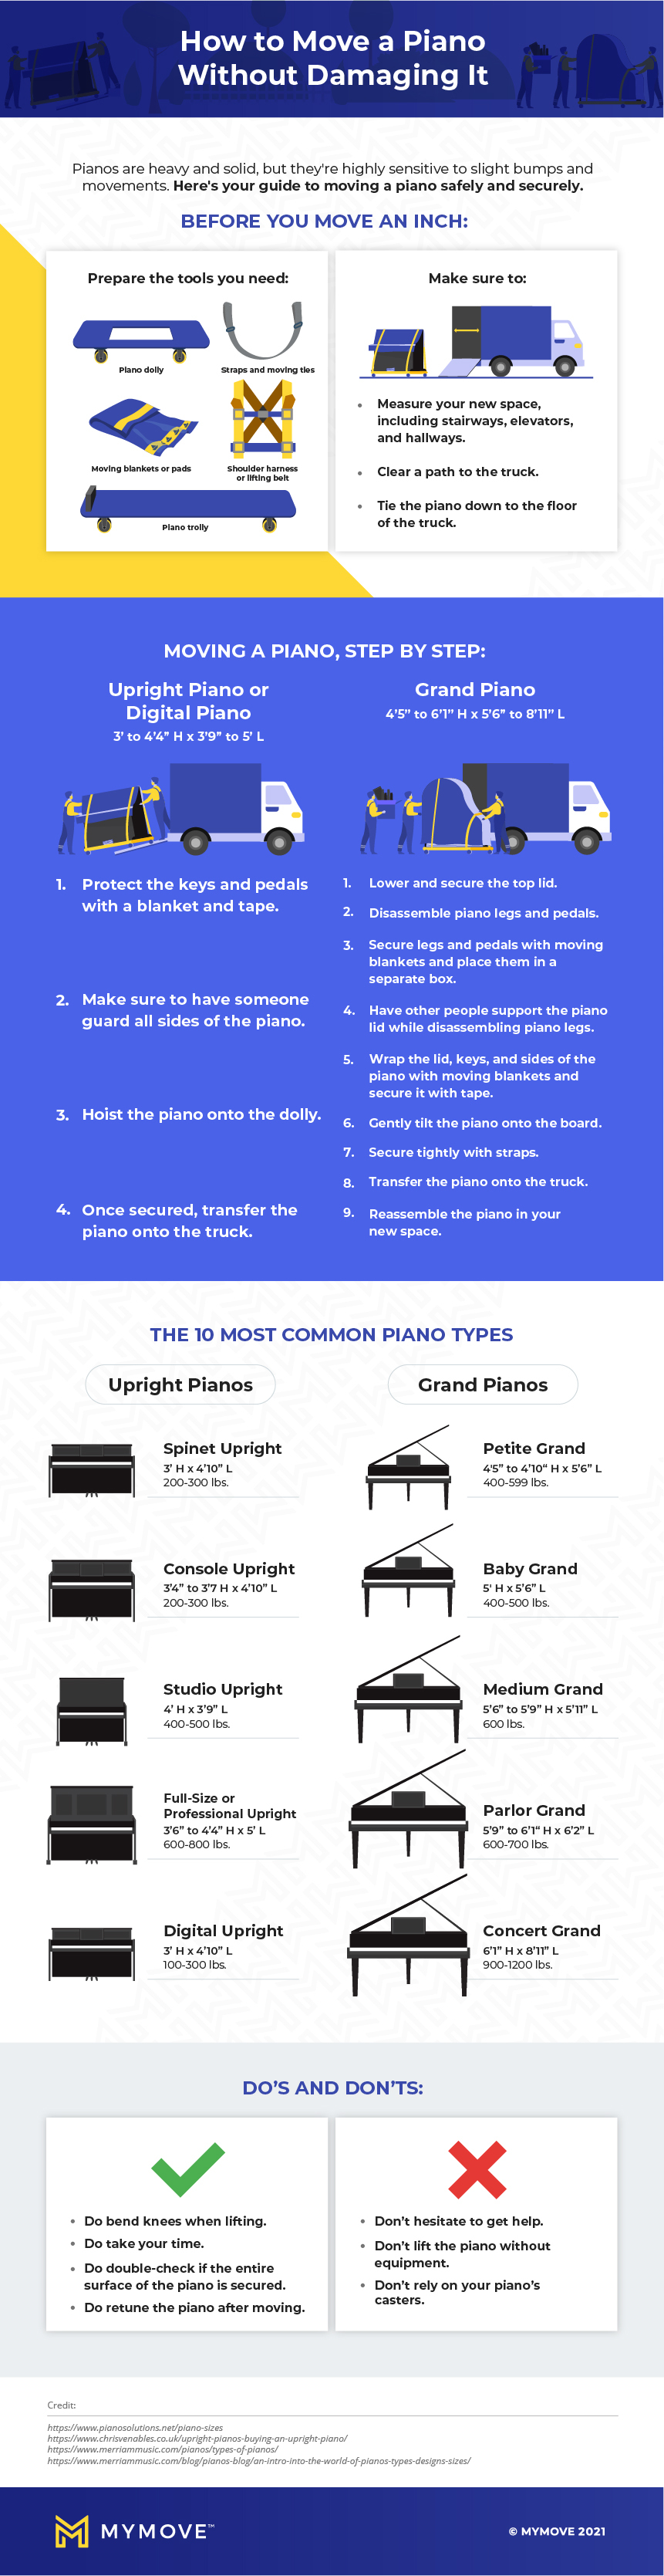 How to move a piano full infographic, step by step